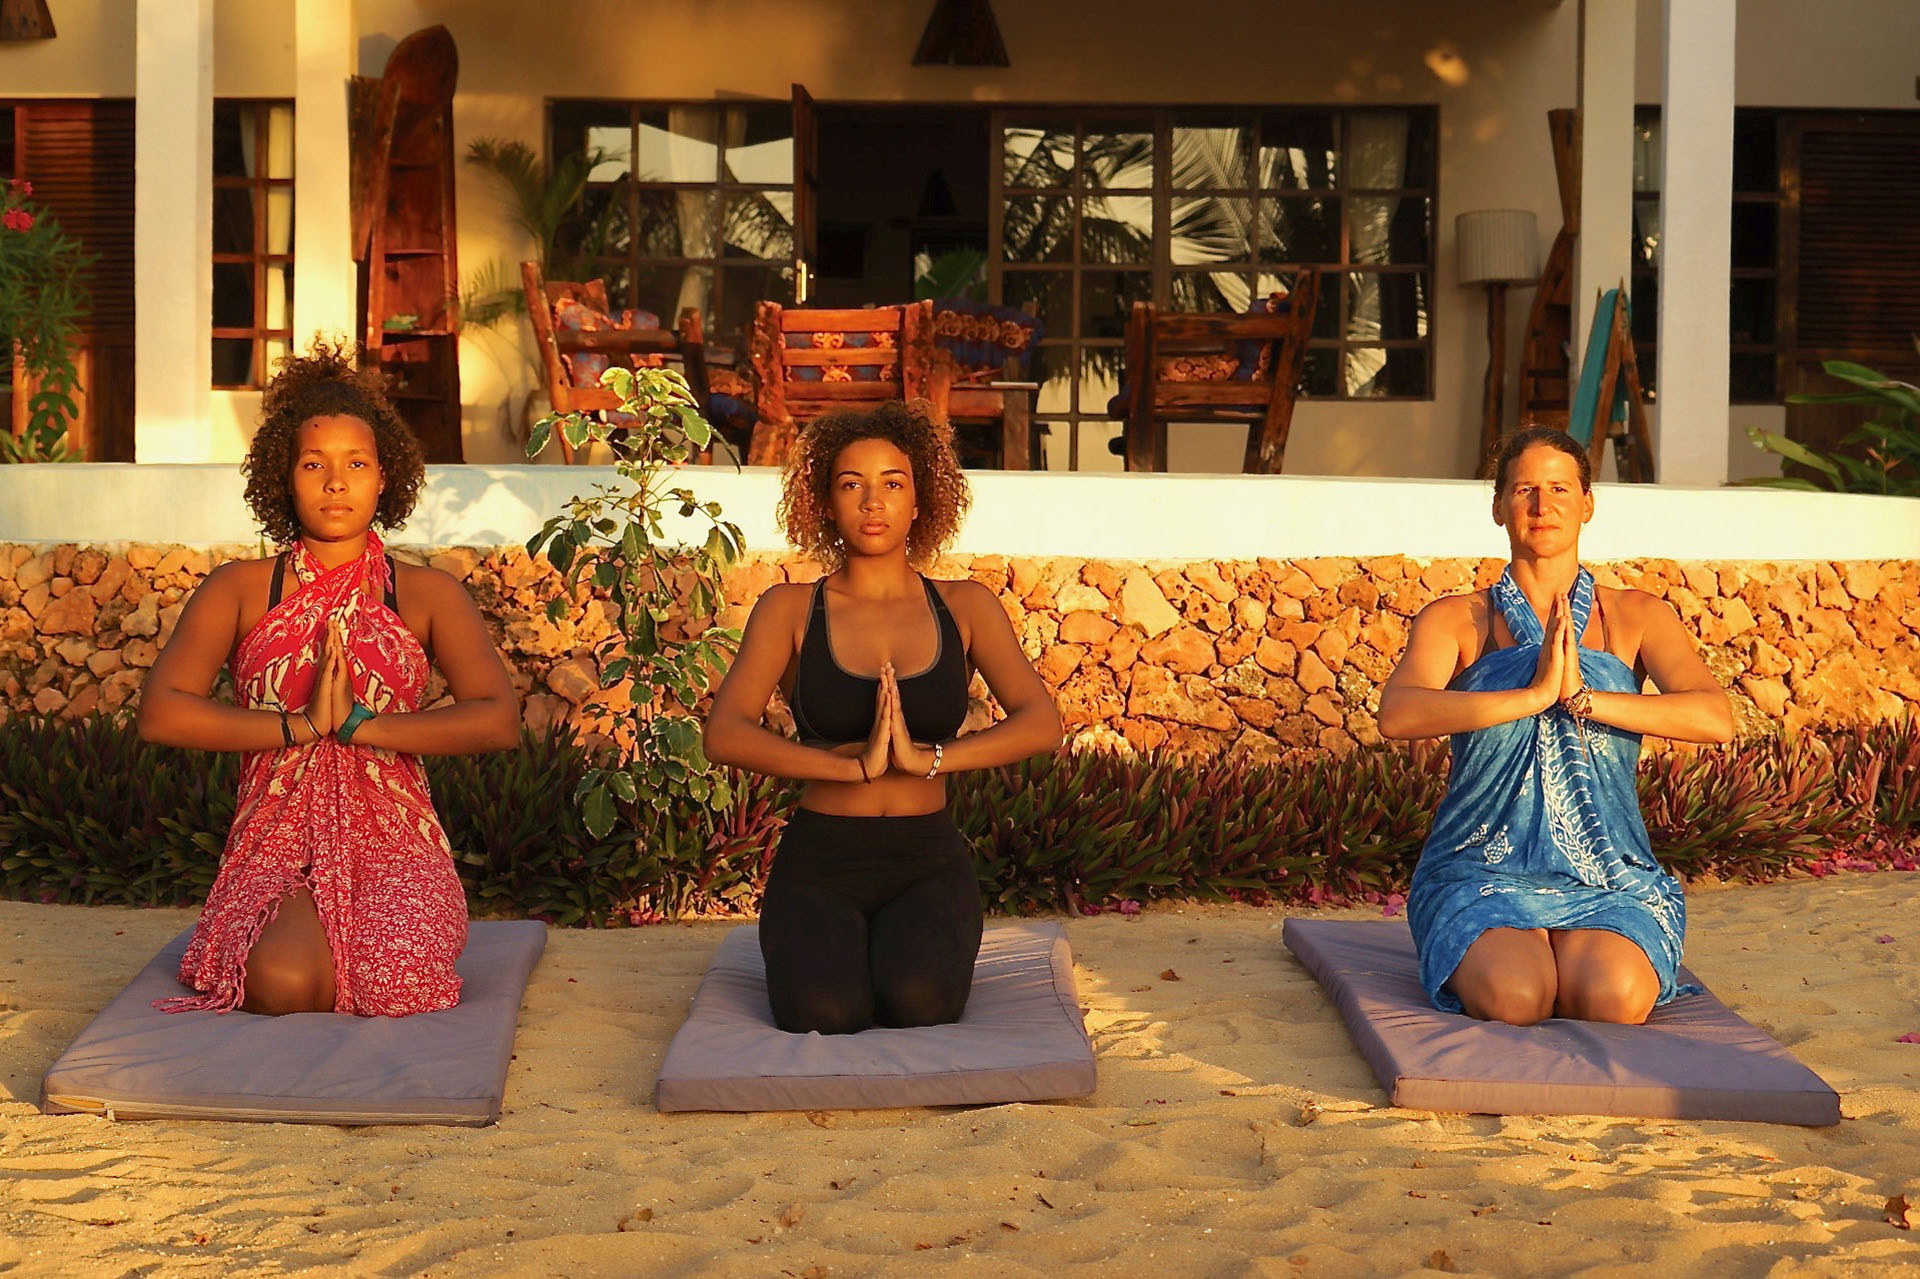 THE PALMS, Yoga Lesson